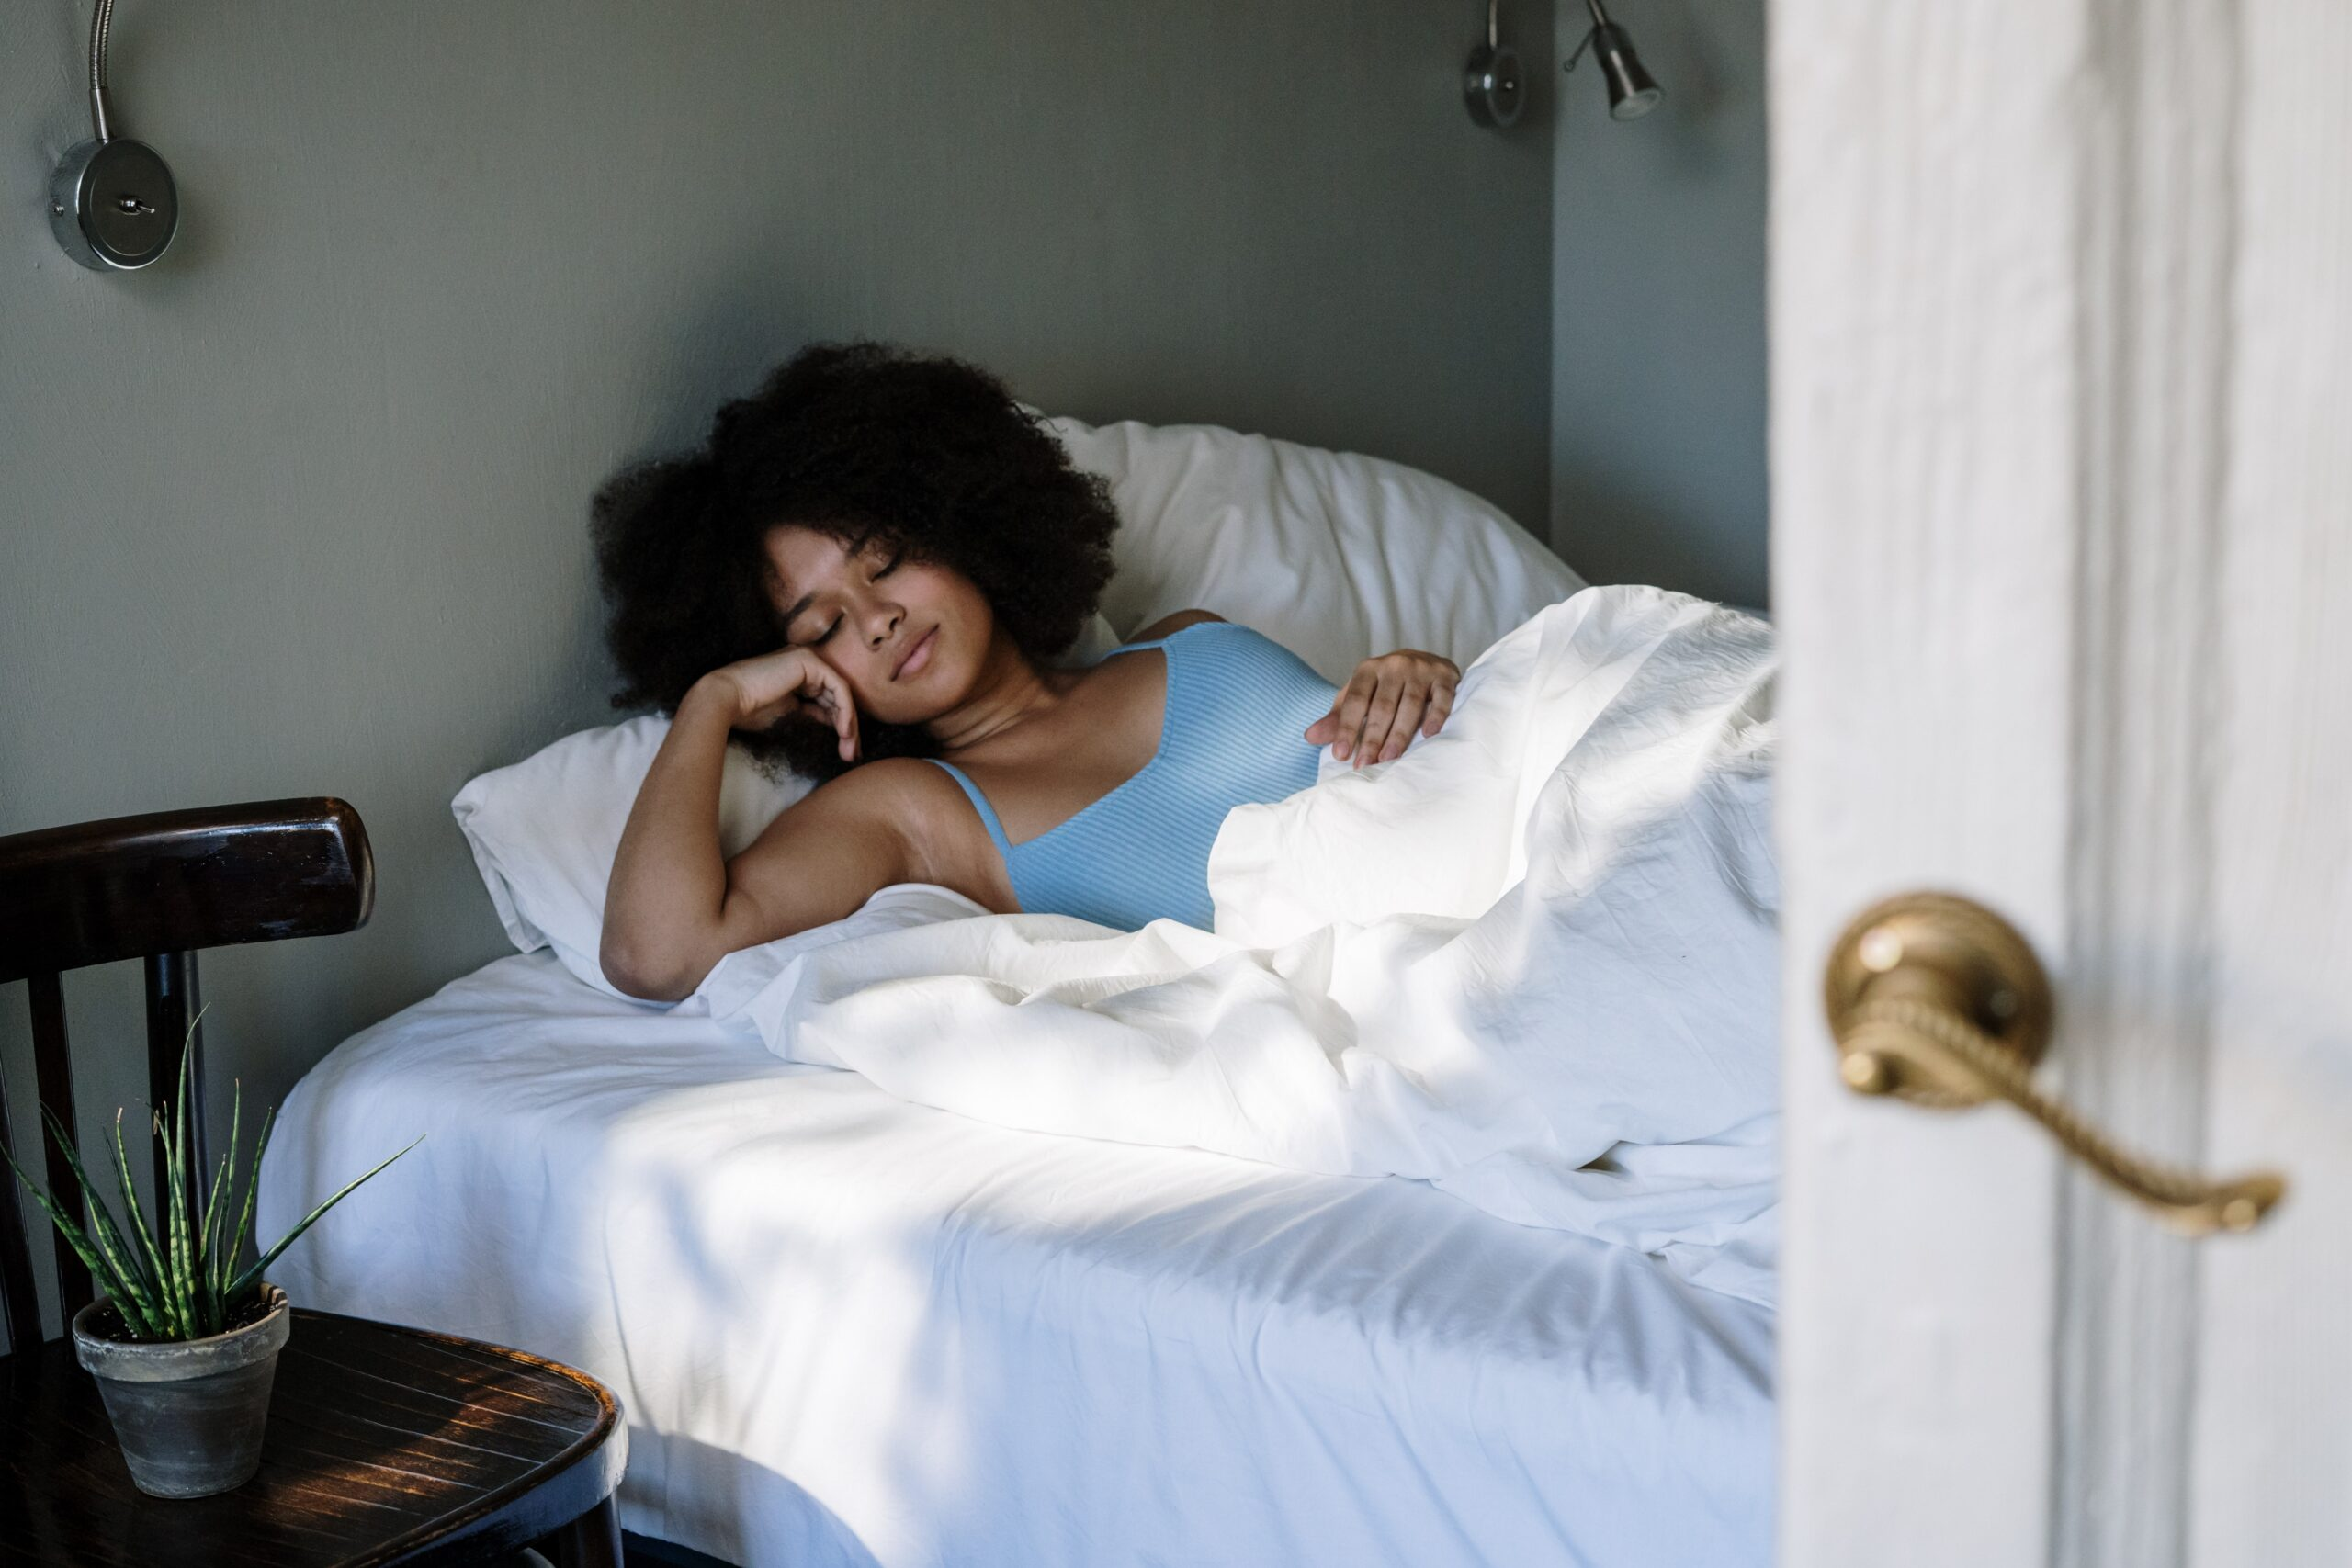 South Africans wake up earlier than rest of the world